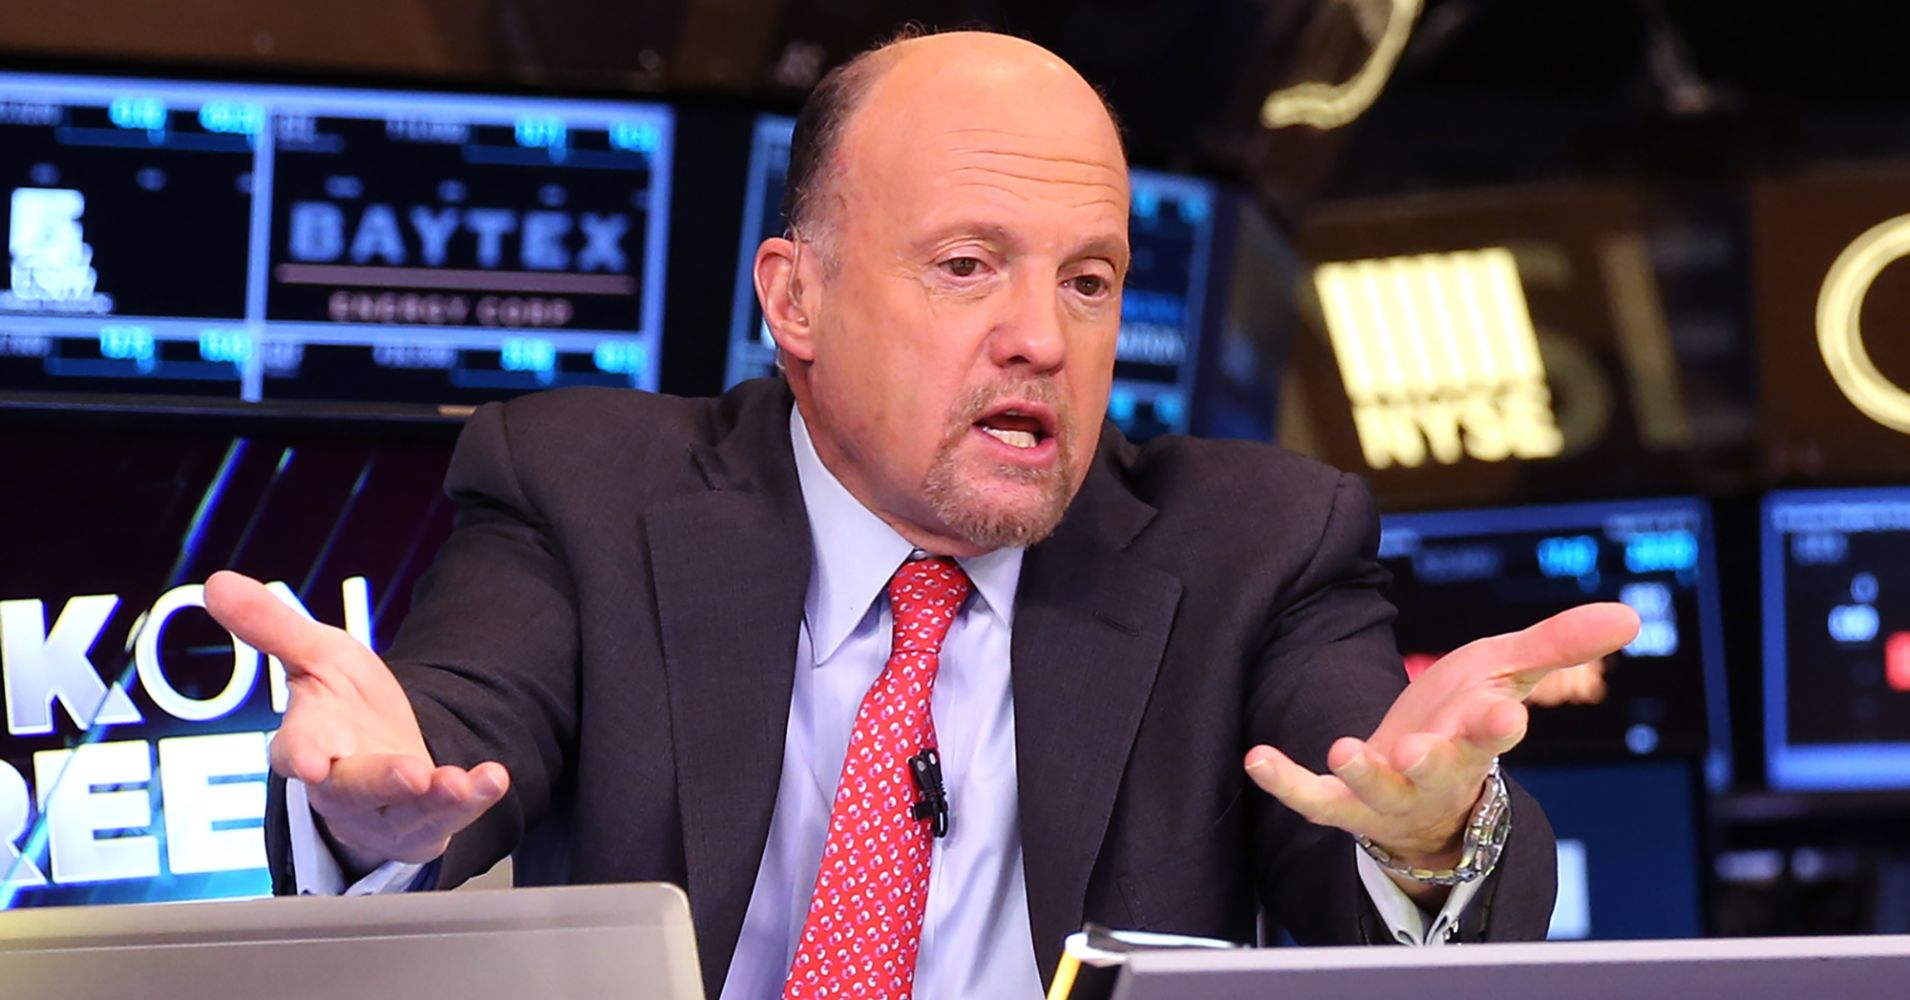 Cramer: The Fed is 'vastly out of touch' — I favor one more hike, then 'Yellen-ize' and hold